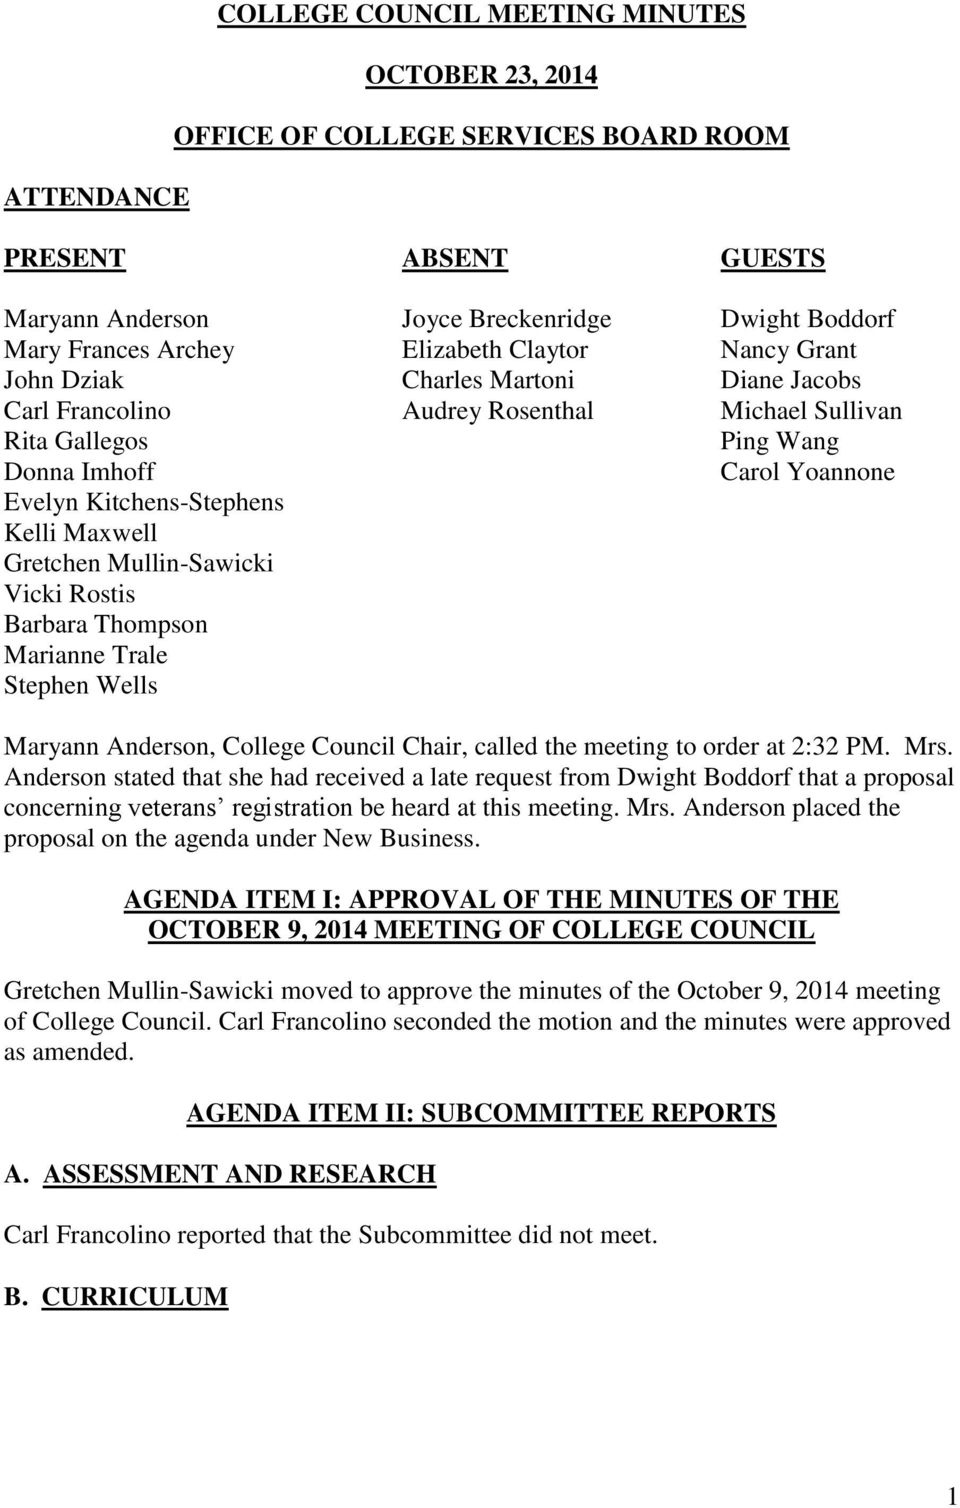 Kelli Maxwell Gretchen Mullin-Sawicki Vicki Rostis Barbara Thompson Marianne Trale Stephen Wells Maryann Anderson, College Council Chair, called the meeting to order at 2:32 PM. Mrs.